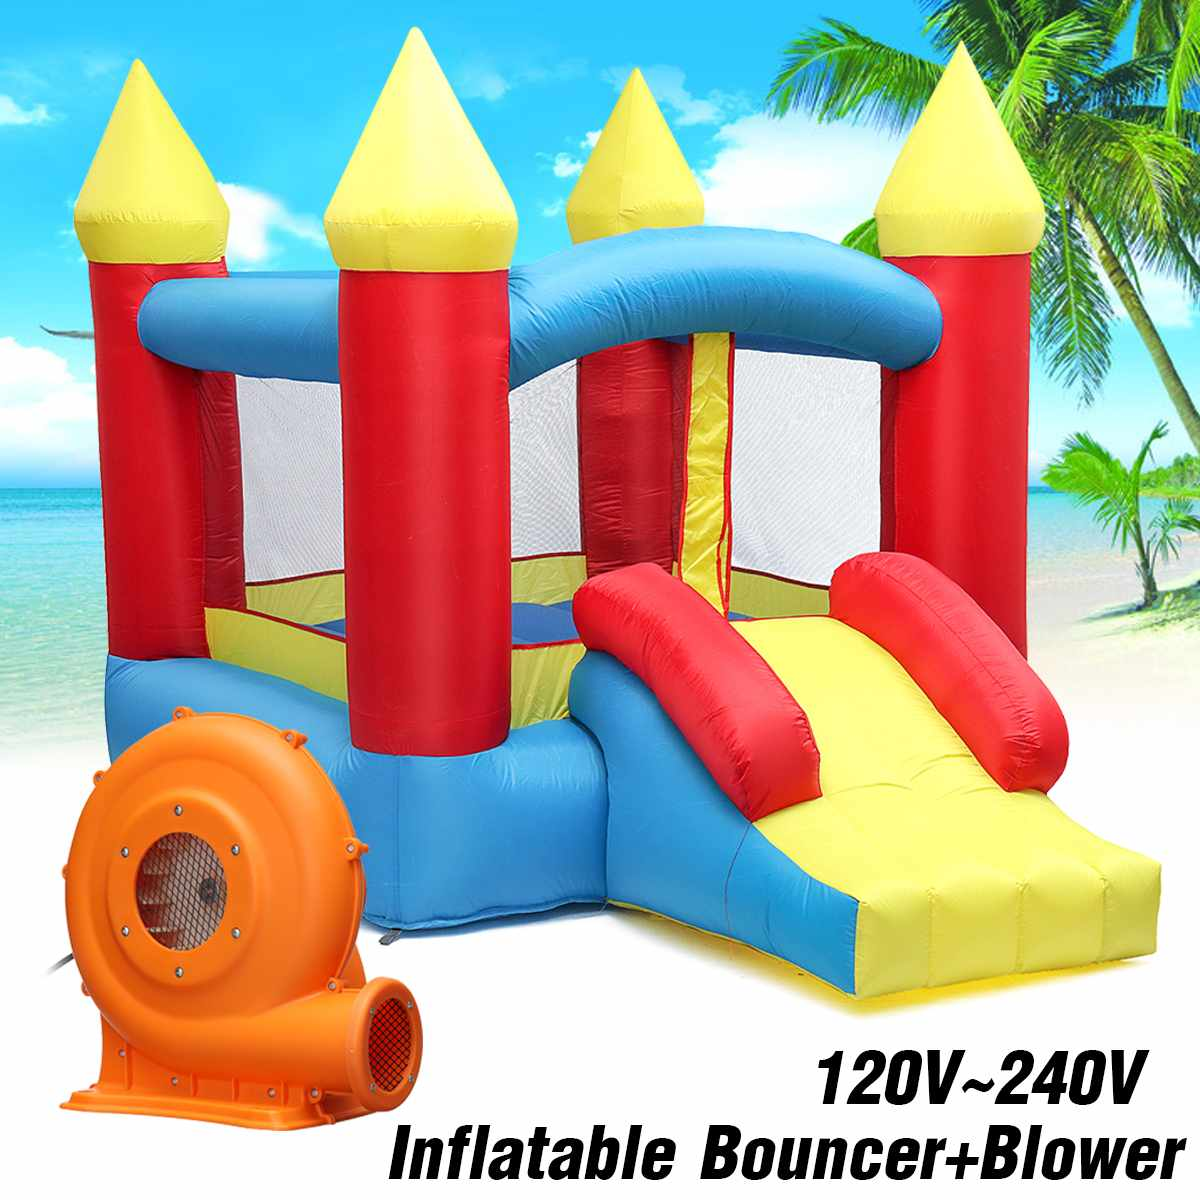 EU/US Plug Kids Play Game  Inflatable Castle  Multi-function  Inflatable Trampoline with 380W Inflatable BouncerEU/US Plug Kids Play Game  Inflatable Castle  Multi-function  Inflatable Trampoline with 380W Inflatable Bouncer